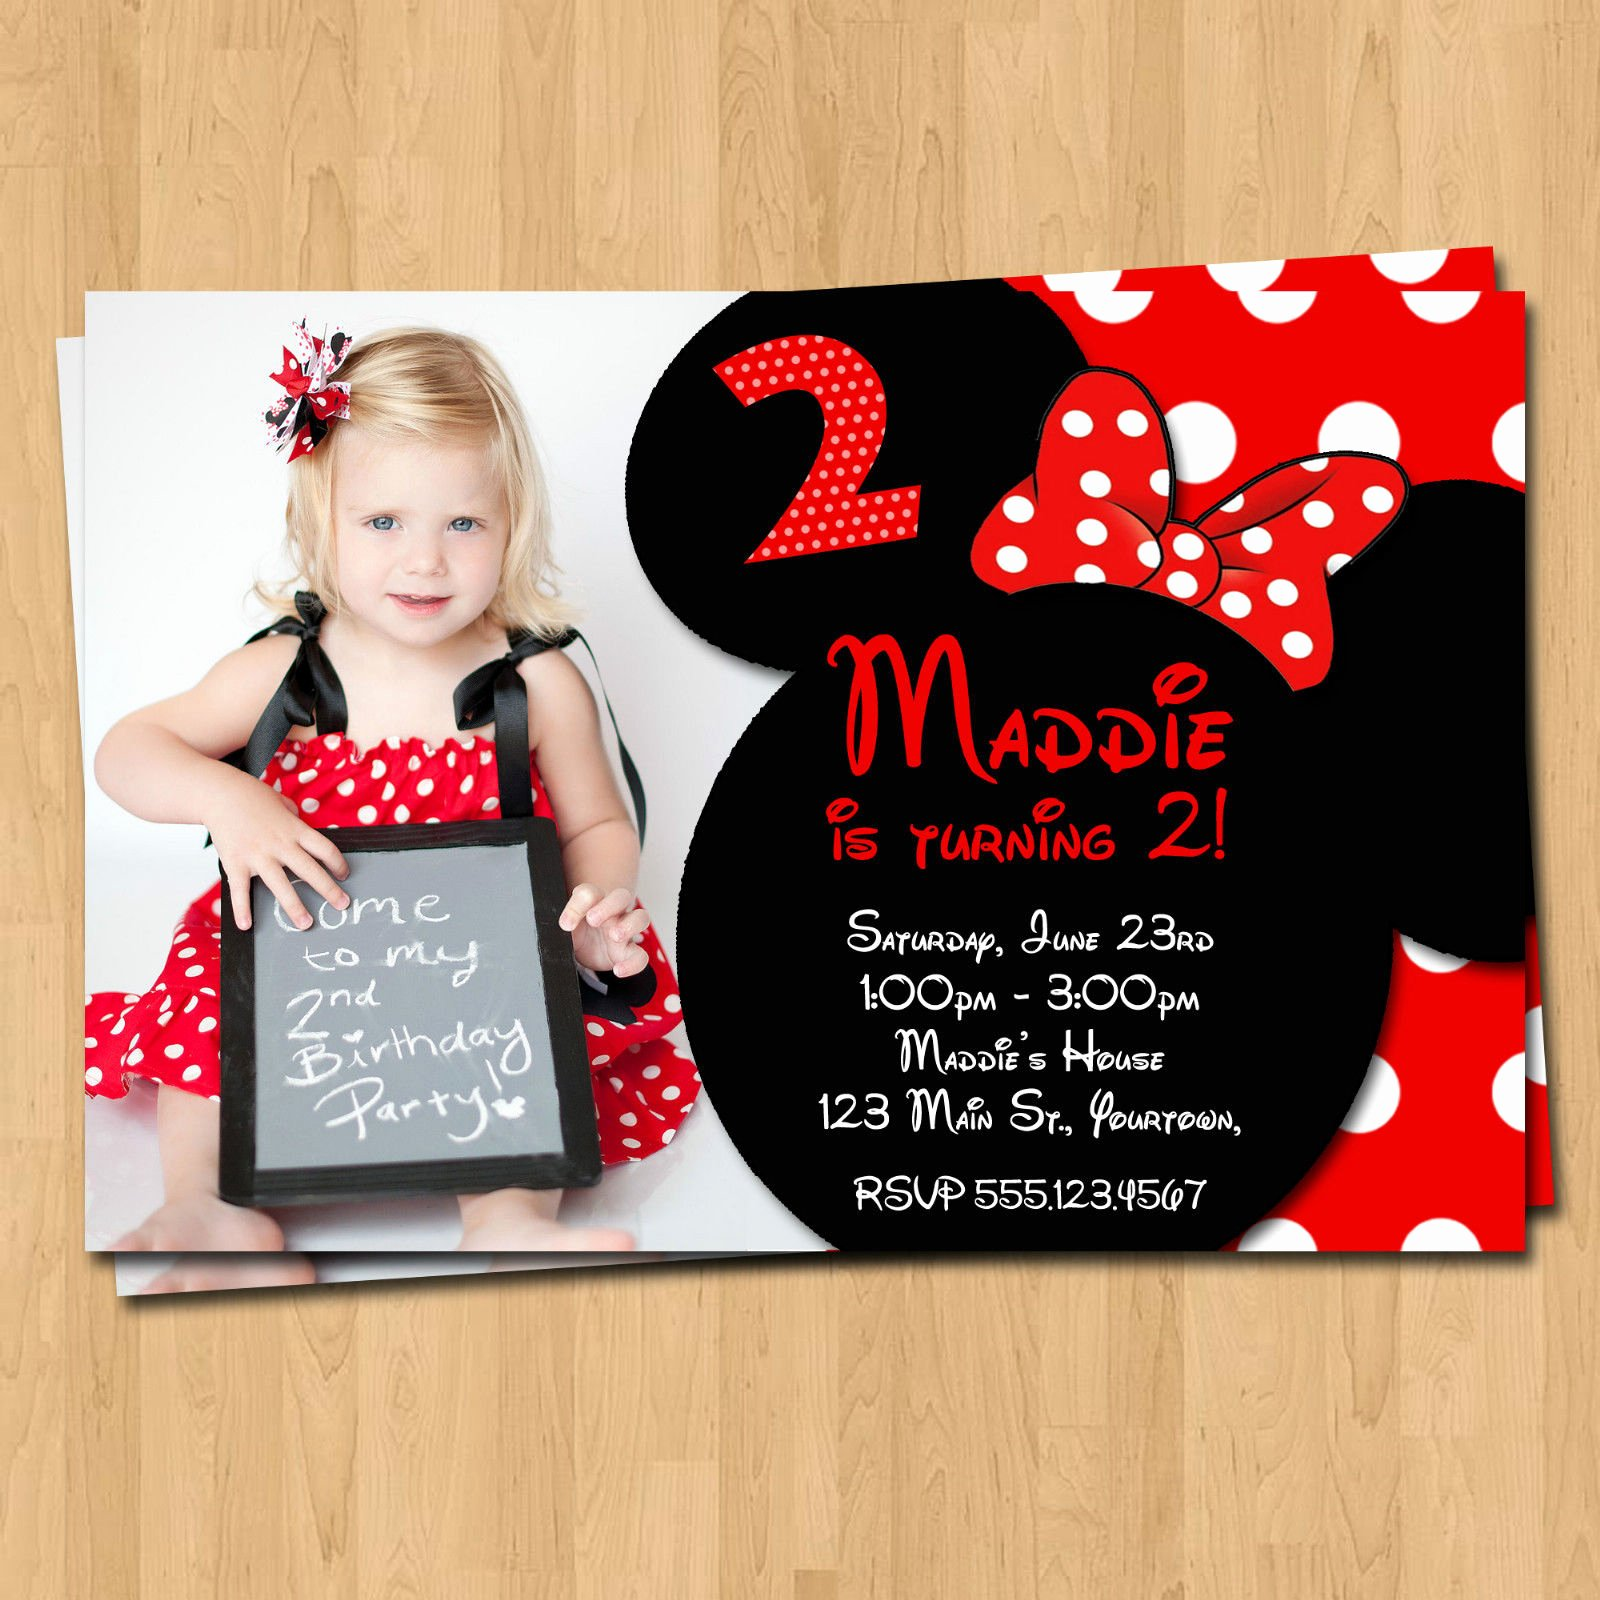 Minnie Mouse Birthday Invitation Unique Free Printable Minnie Mouse Birthday Party Invitations Free Invitation Templates Drevio